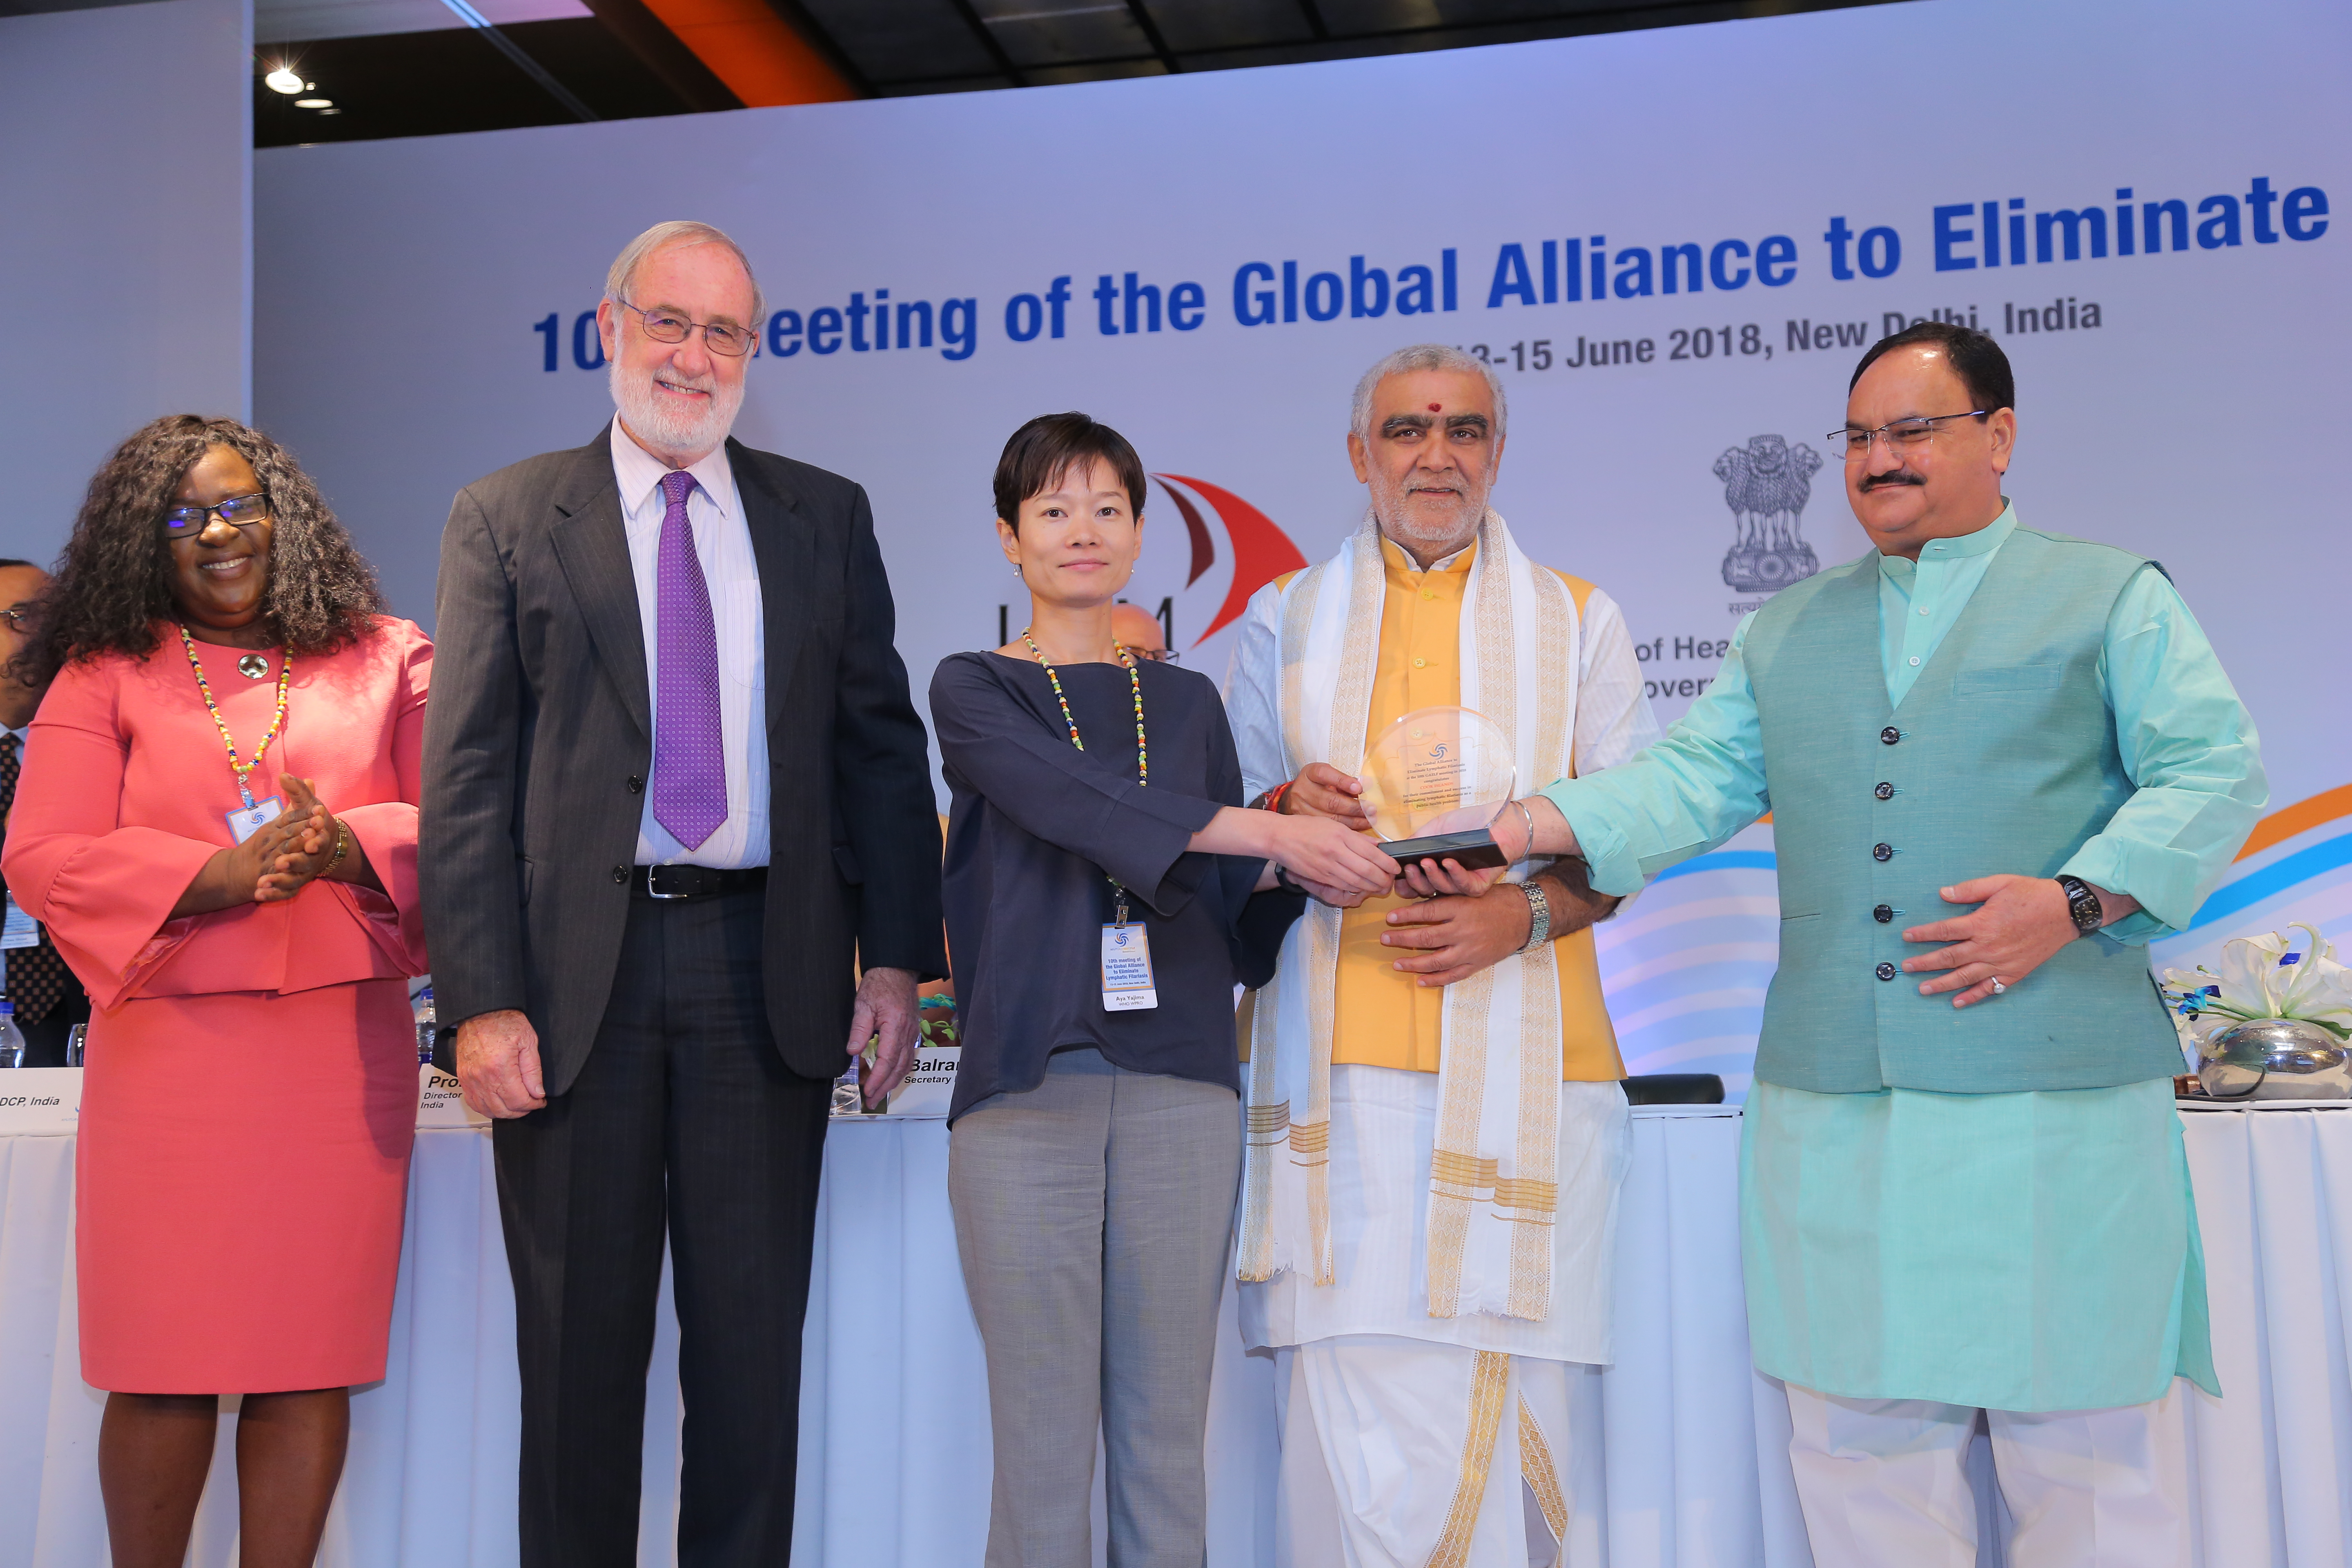 10th Meeting of the Global Alliance to Eliminate Lymphatic Filariasis, 13-15 June 2018, New Delhi